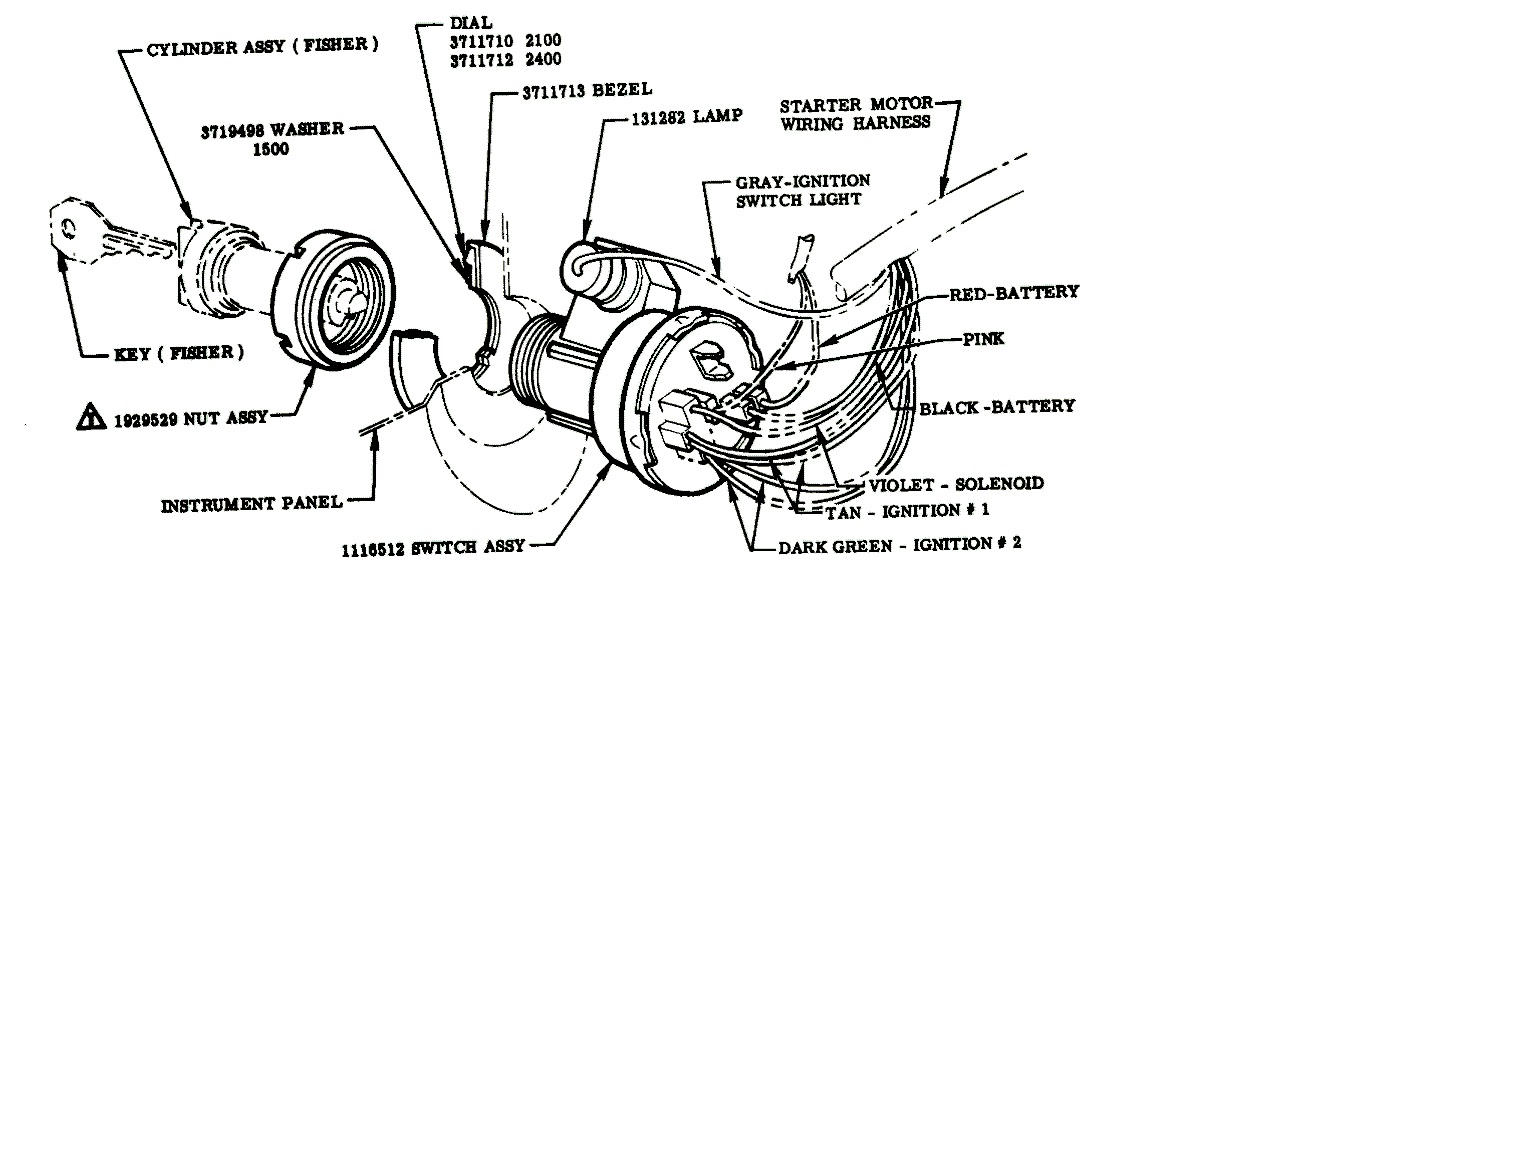 1970 chevy distributor diagram general wiring diagrams 1971 Chevy Truck Wiring Diagram